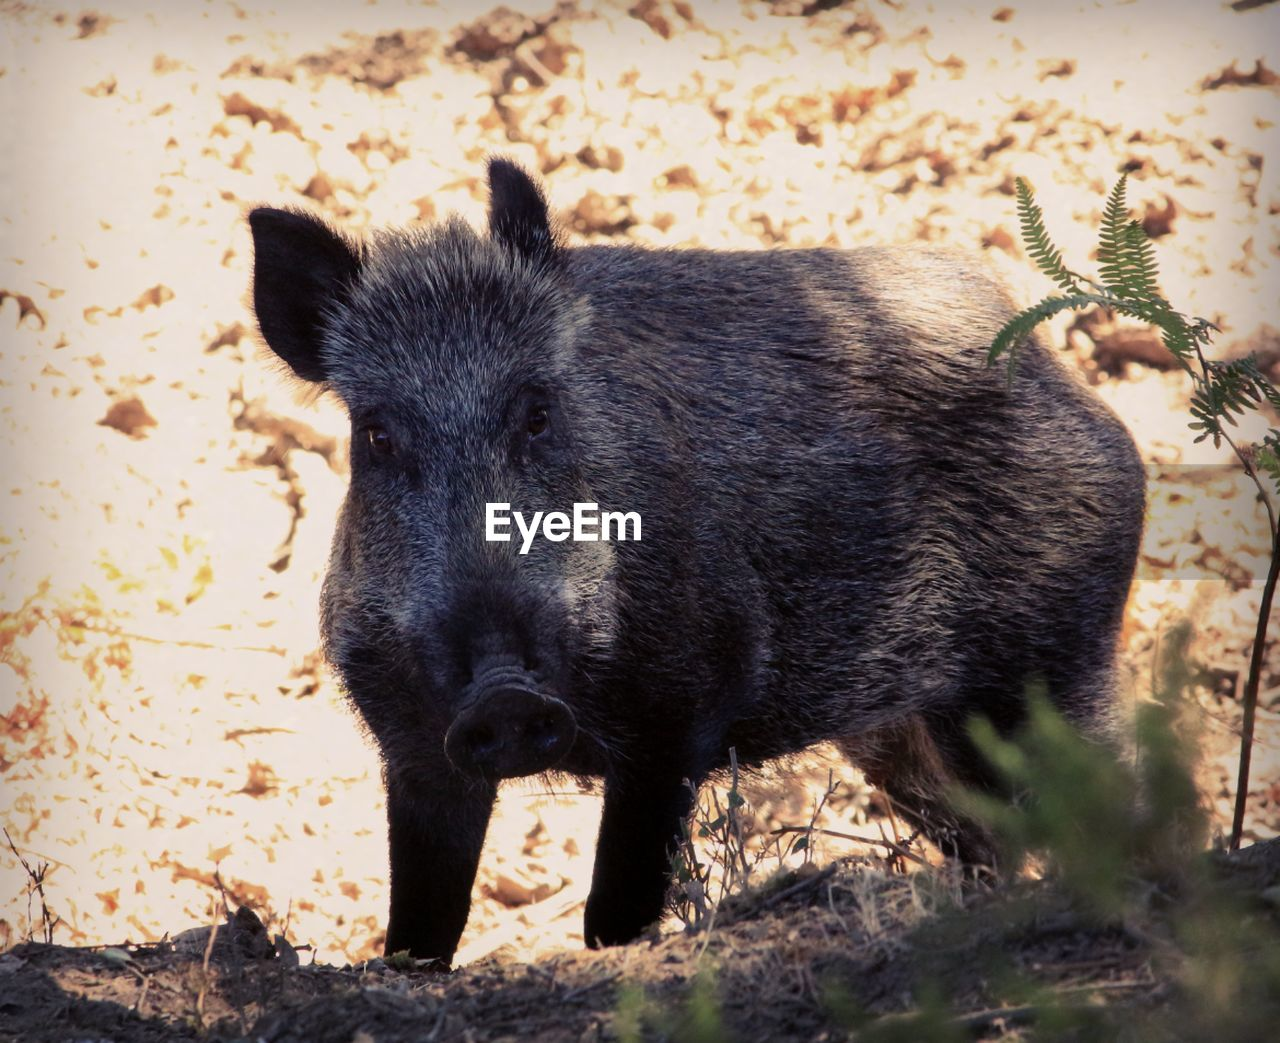 animal, animal themes, one animal, mammal, animal wildlife, animals in the wild, no people, vertebrate, nature, wild boar, outdoors, tree, close-up, pig, portrait, land, day, emotion, standing, plant